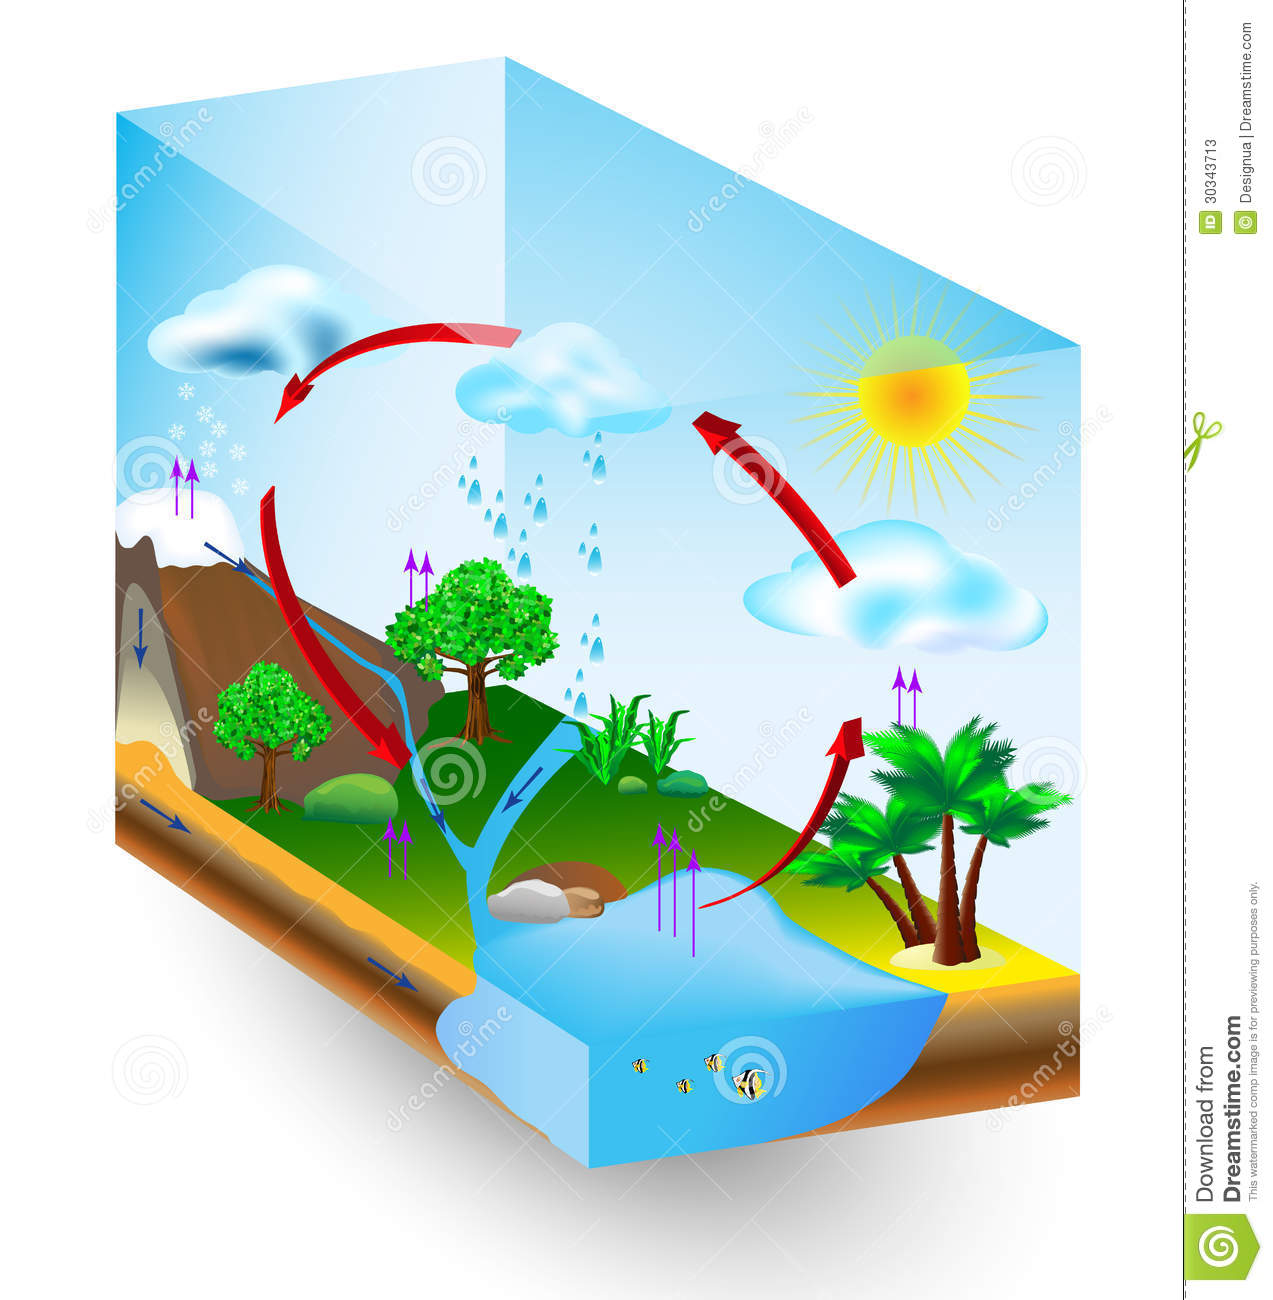 water cycle diagram vector  condensation, evaporation and environment